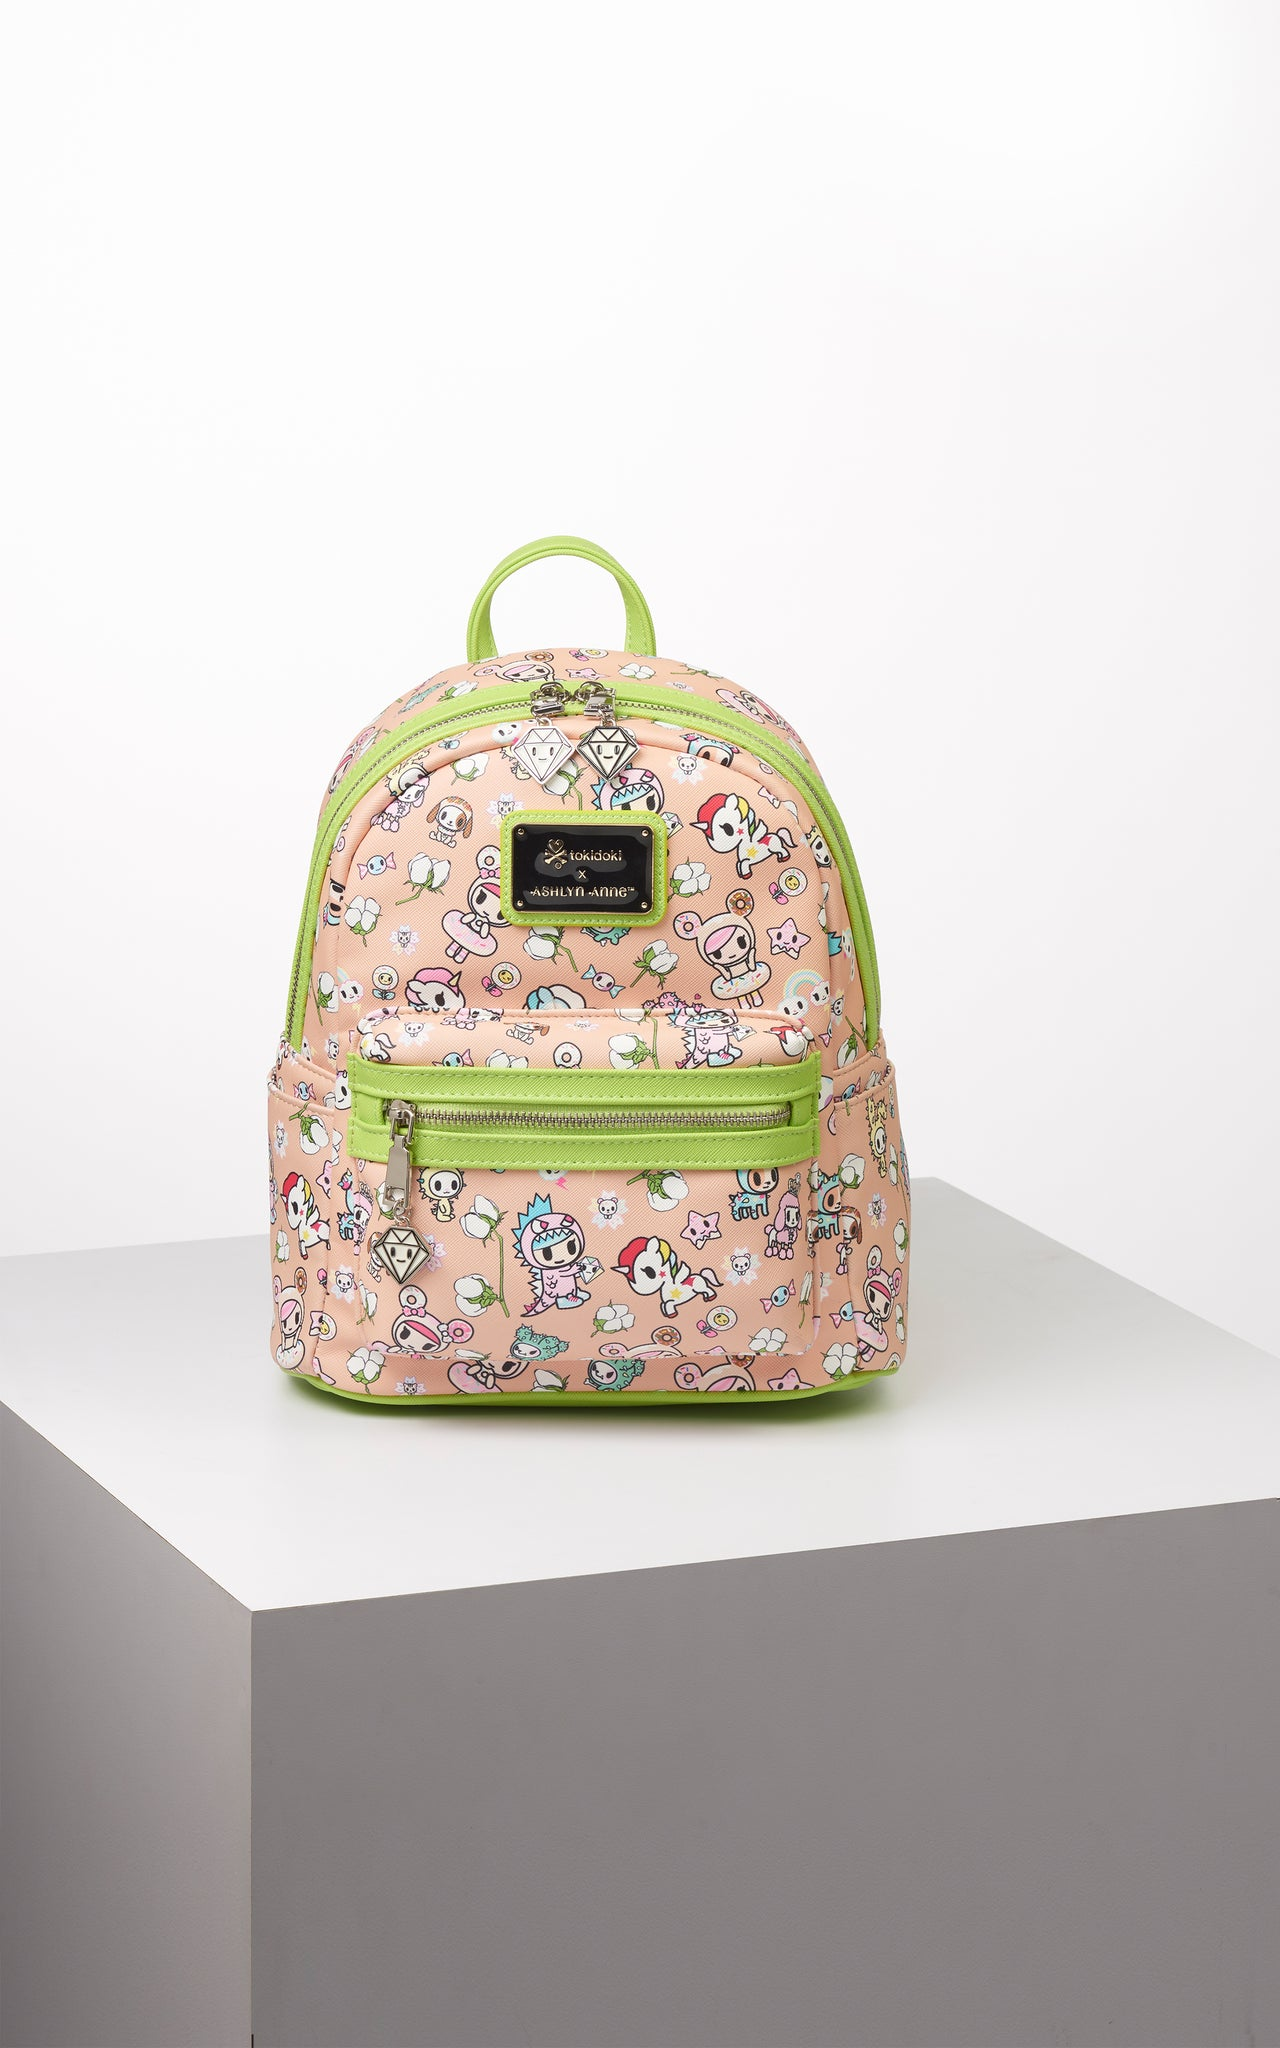 TDxAN Summer-in-Rio Backpack - A.Anne, Tokidoki, Ashlyn Anne, Fashion, Handbags, School, Bag, Accessories